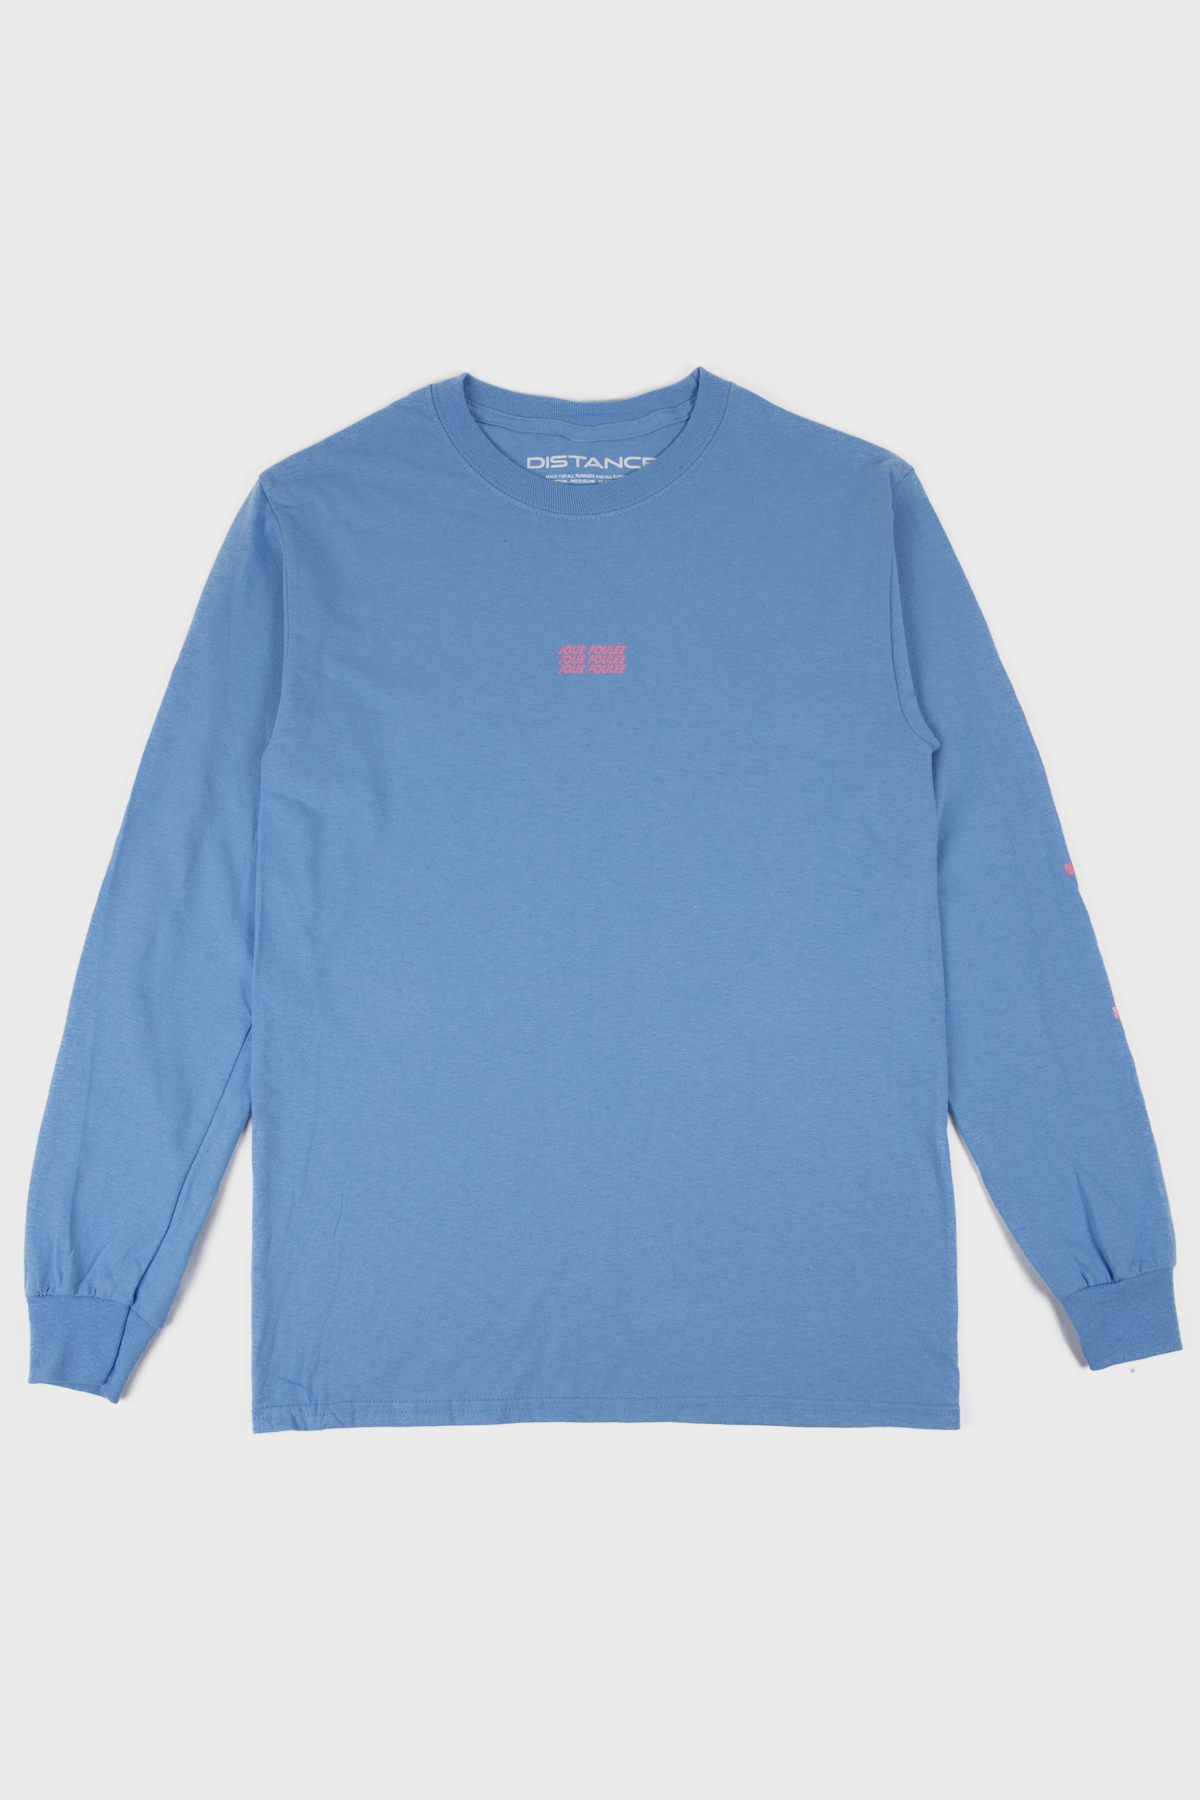 Jolie Foulée - Untalented Runners Long sleeve - Blue Pink